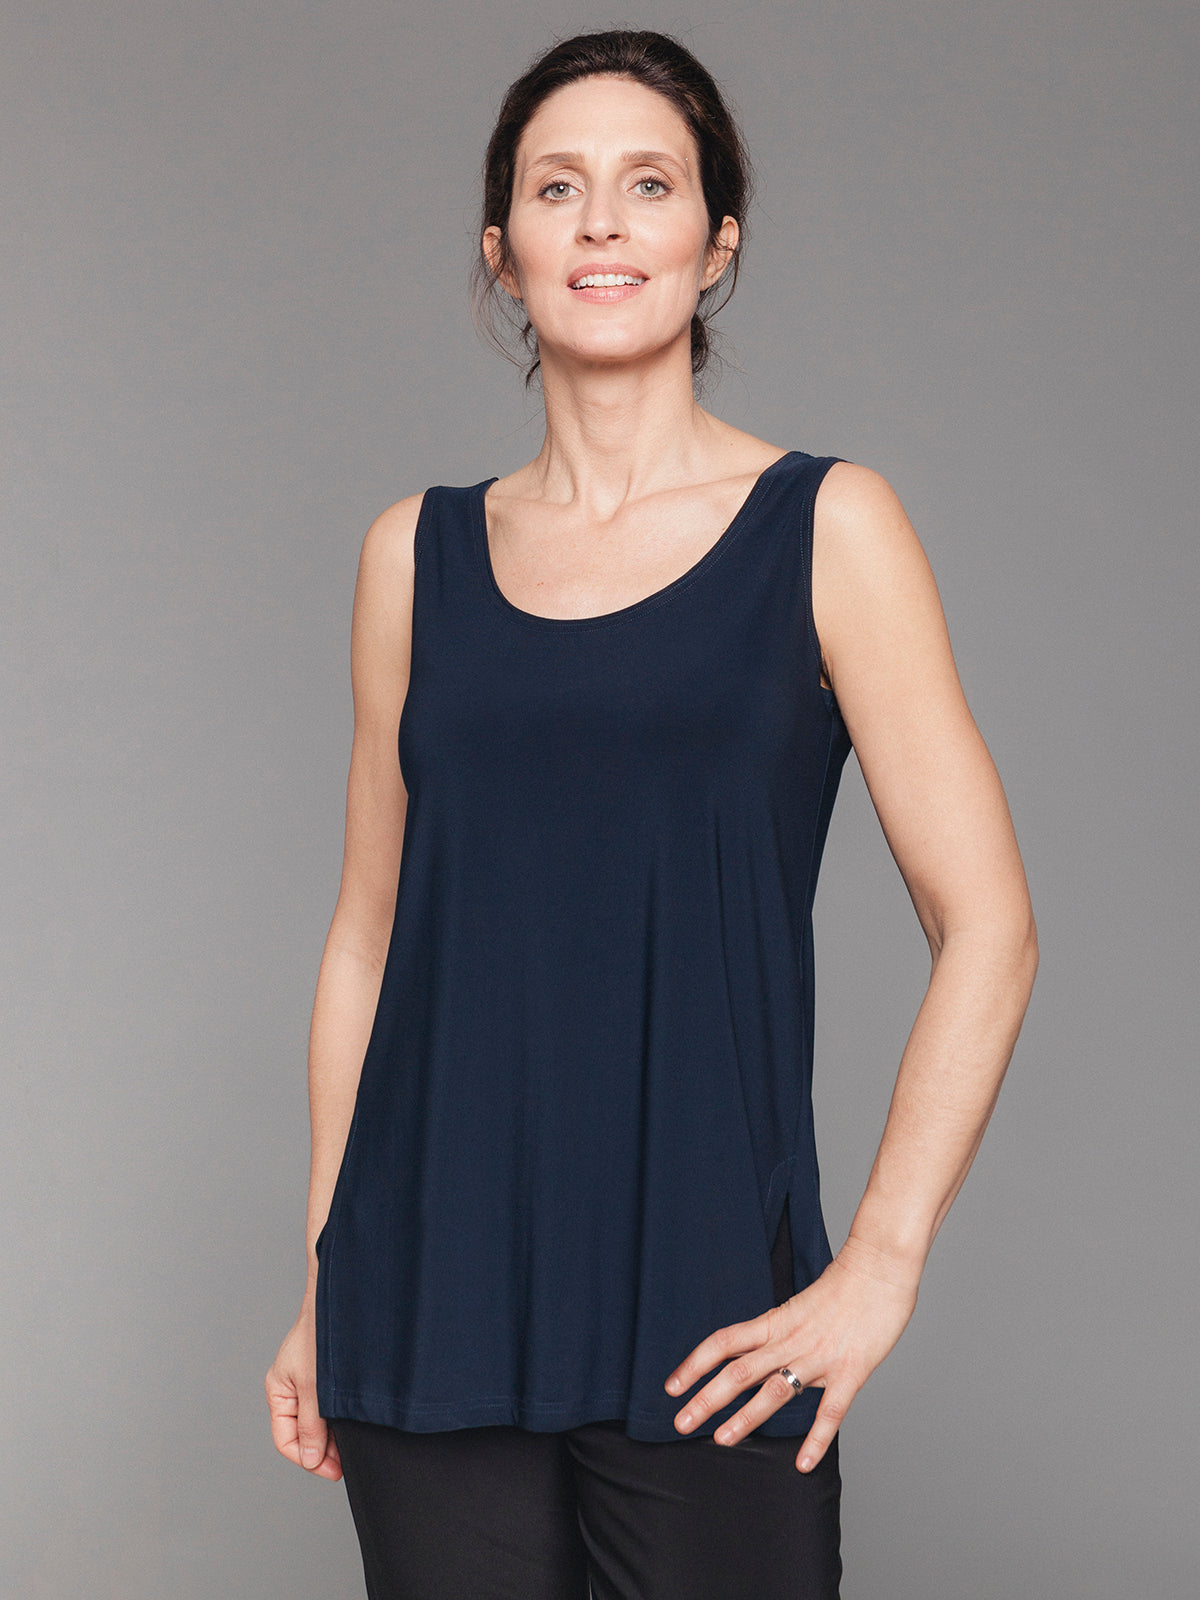 Sympli Go To Tank Relax - Navy - Statement Boutique